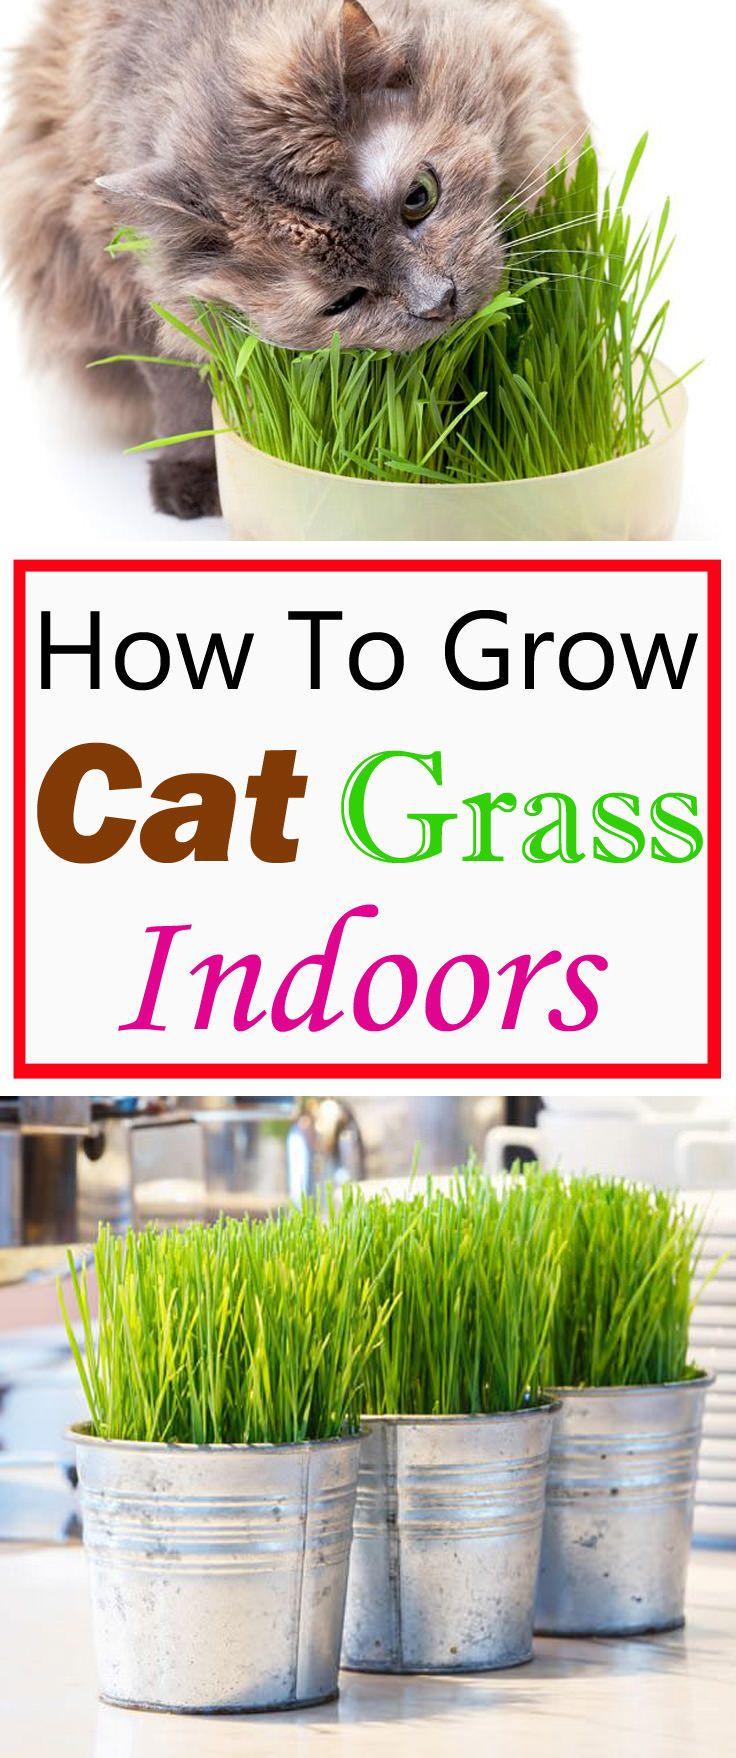 Growing cat grass indoors will keep your cats busy and entertain them. This way they don't need to go outside for grazing, where the grass may be treated with pesticides and fertilizer!